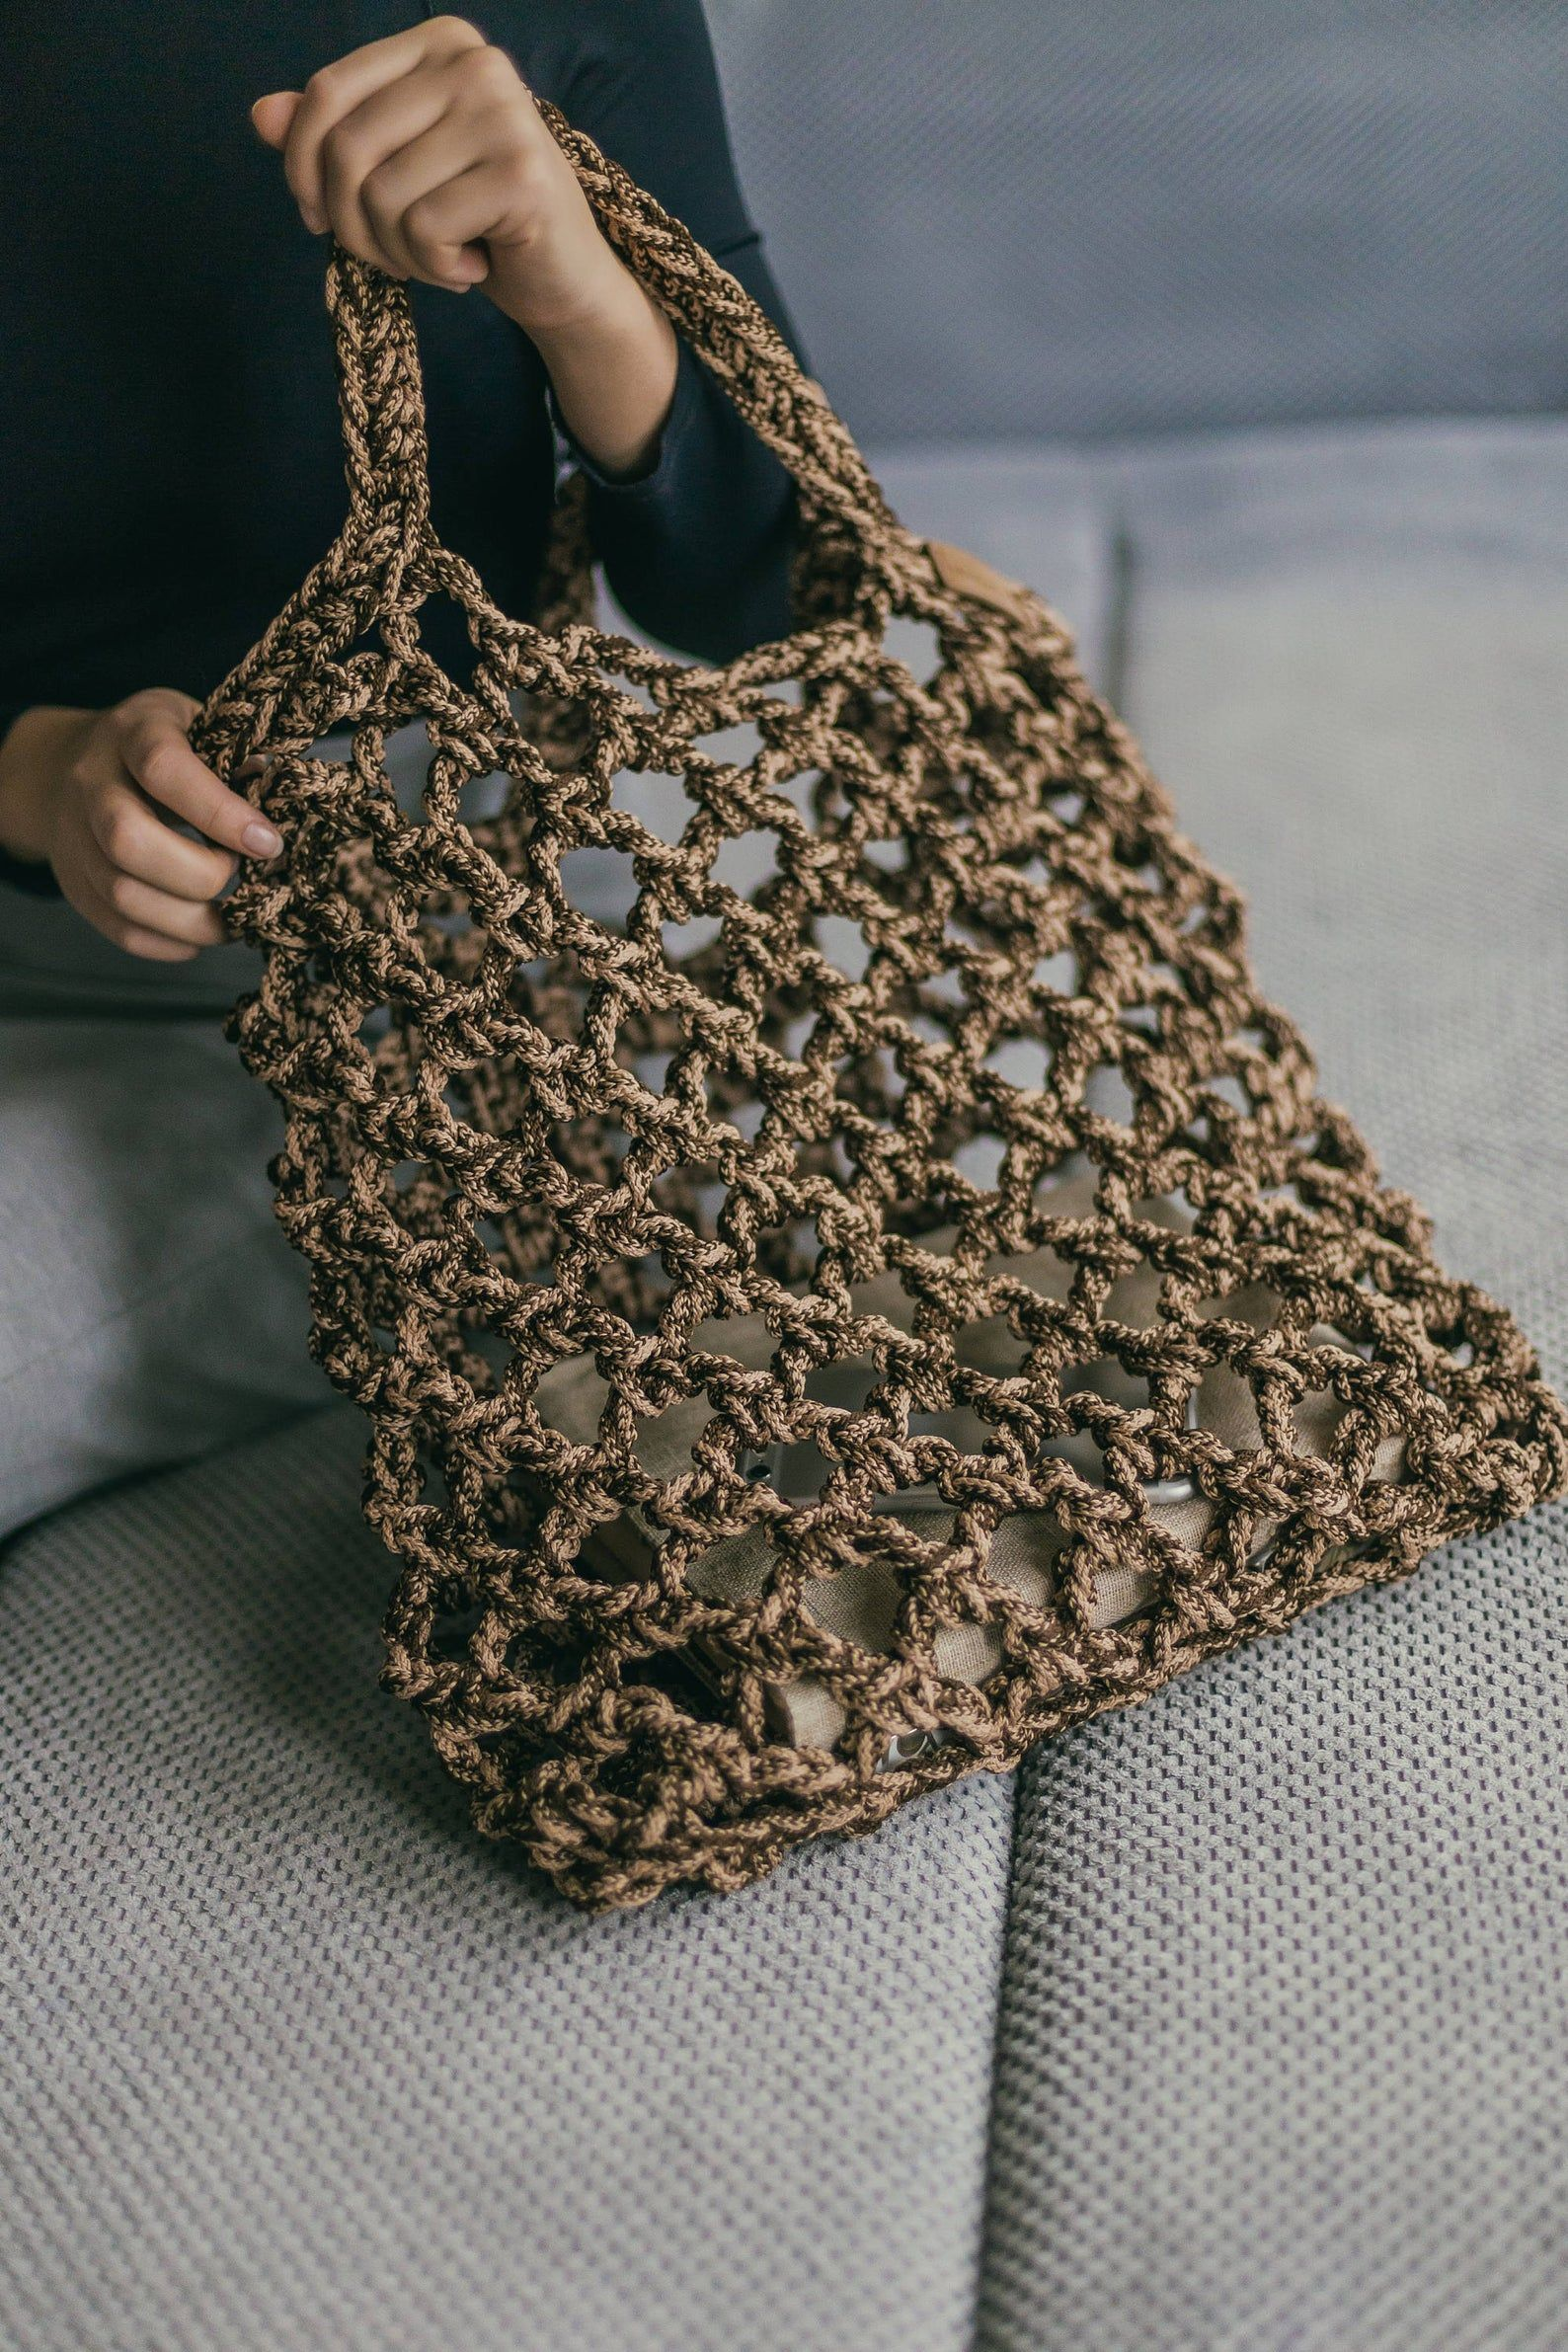 Photo of Beach bag pattern, tote bag PATTERN pdf, market tote bag, crochet bag, beach tote bag, Crochet tote PATTERN, crochet tote bag PATTERN